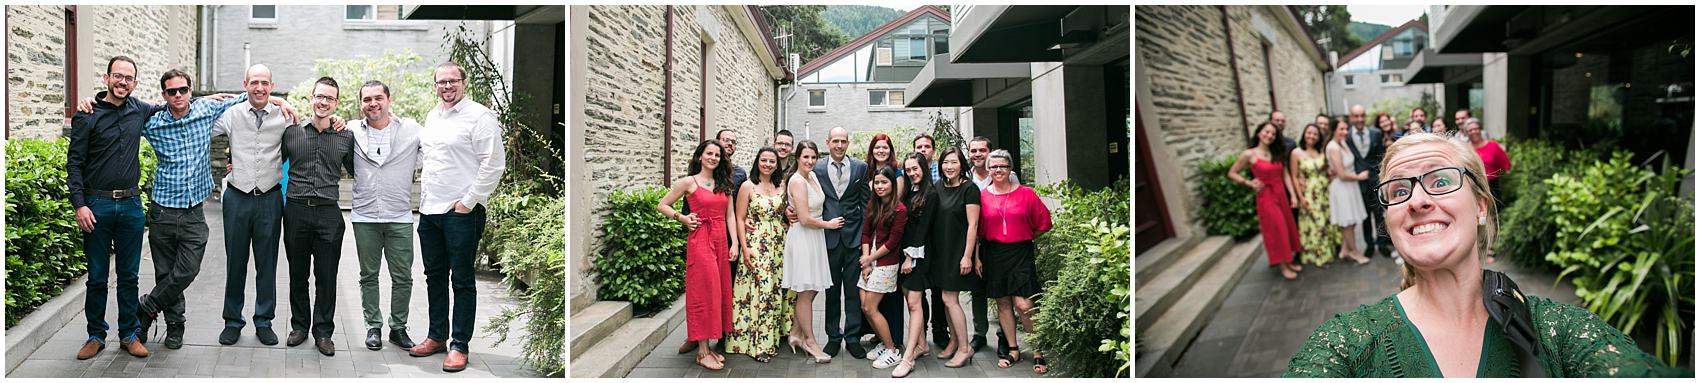 Queenstown New Zealand Wedding Photographer Bruna Fabricio Smetona Photo-0030.jpg